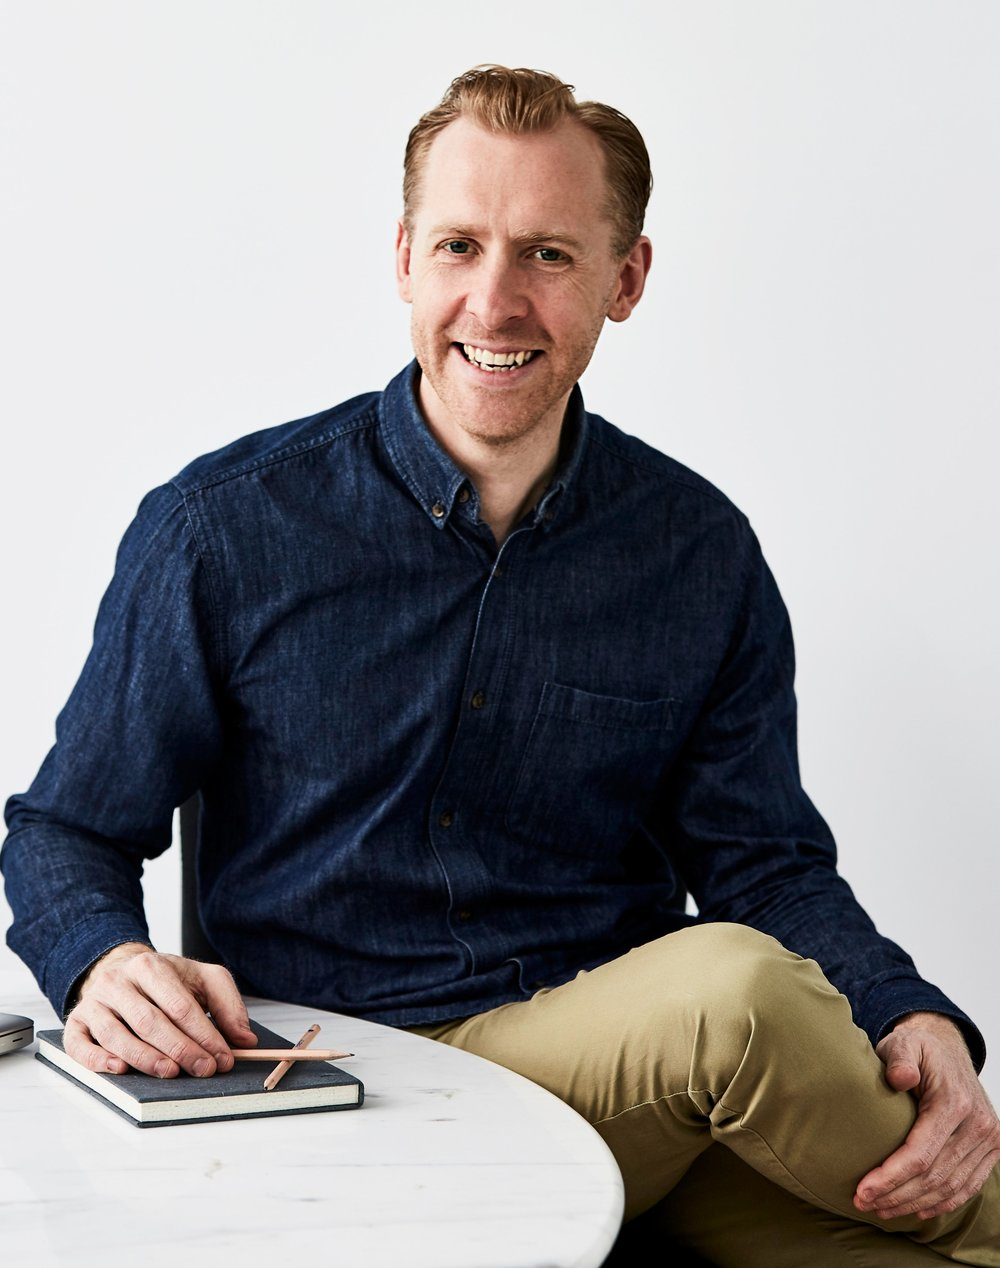 Dan Peterson, Director and Founder of The High-Performance Brand.